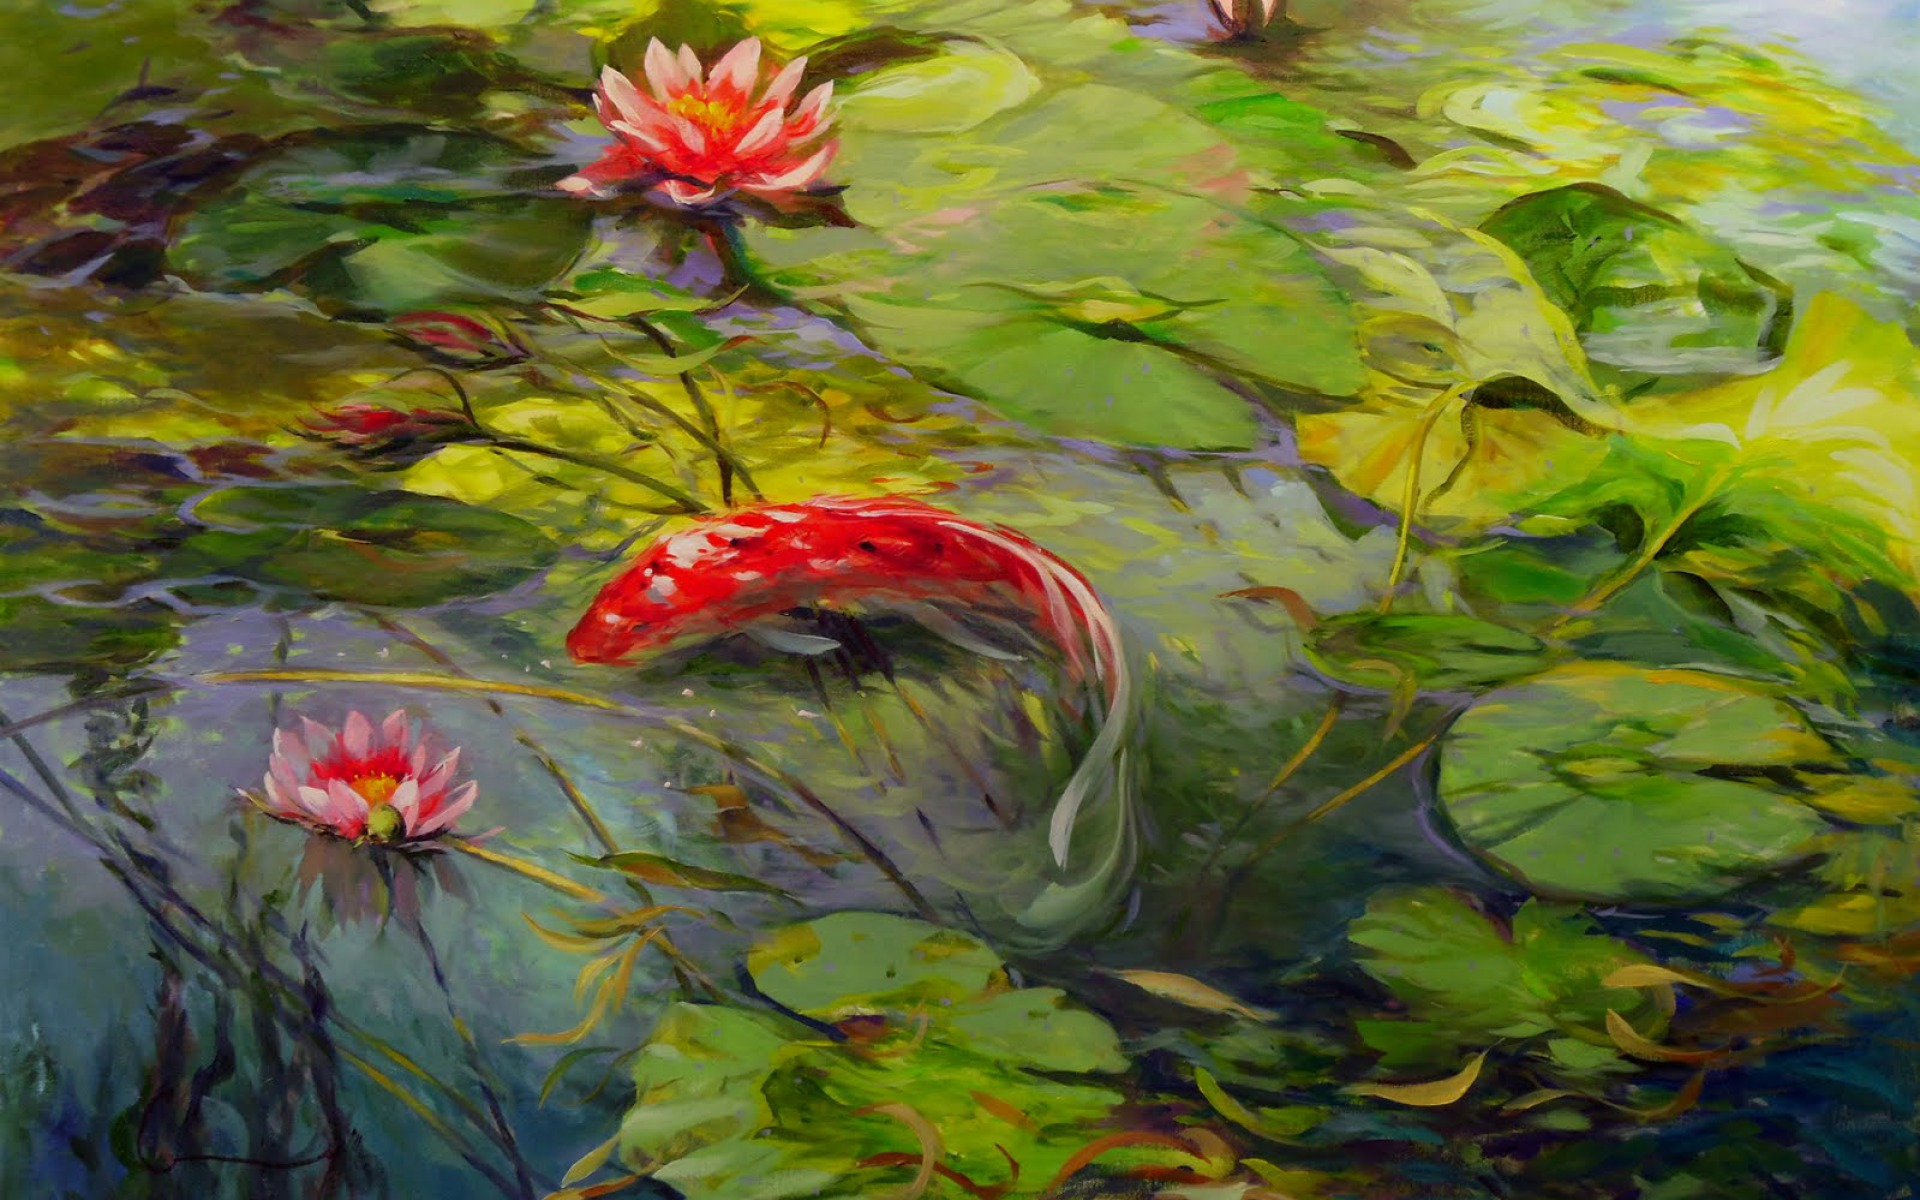 How To Paint Koi Fish In Oil